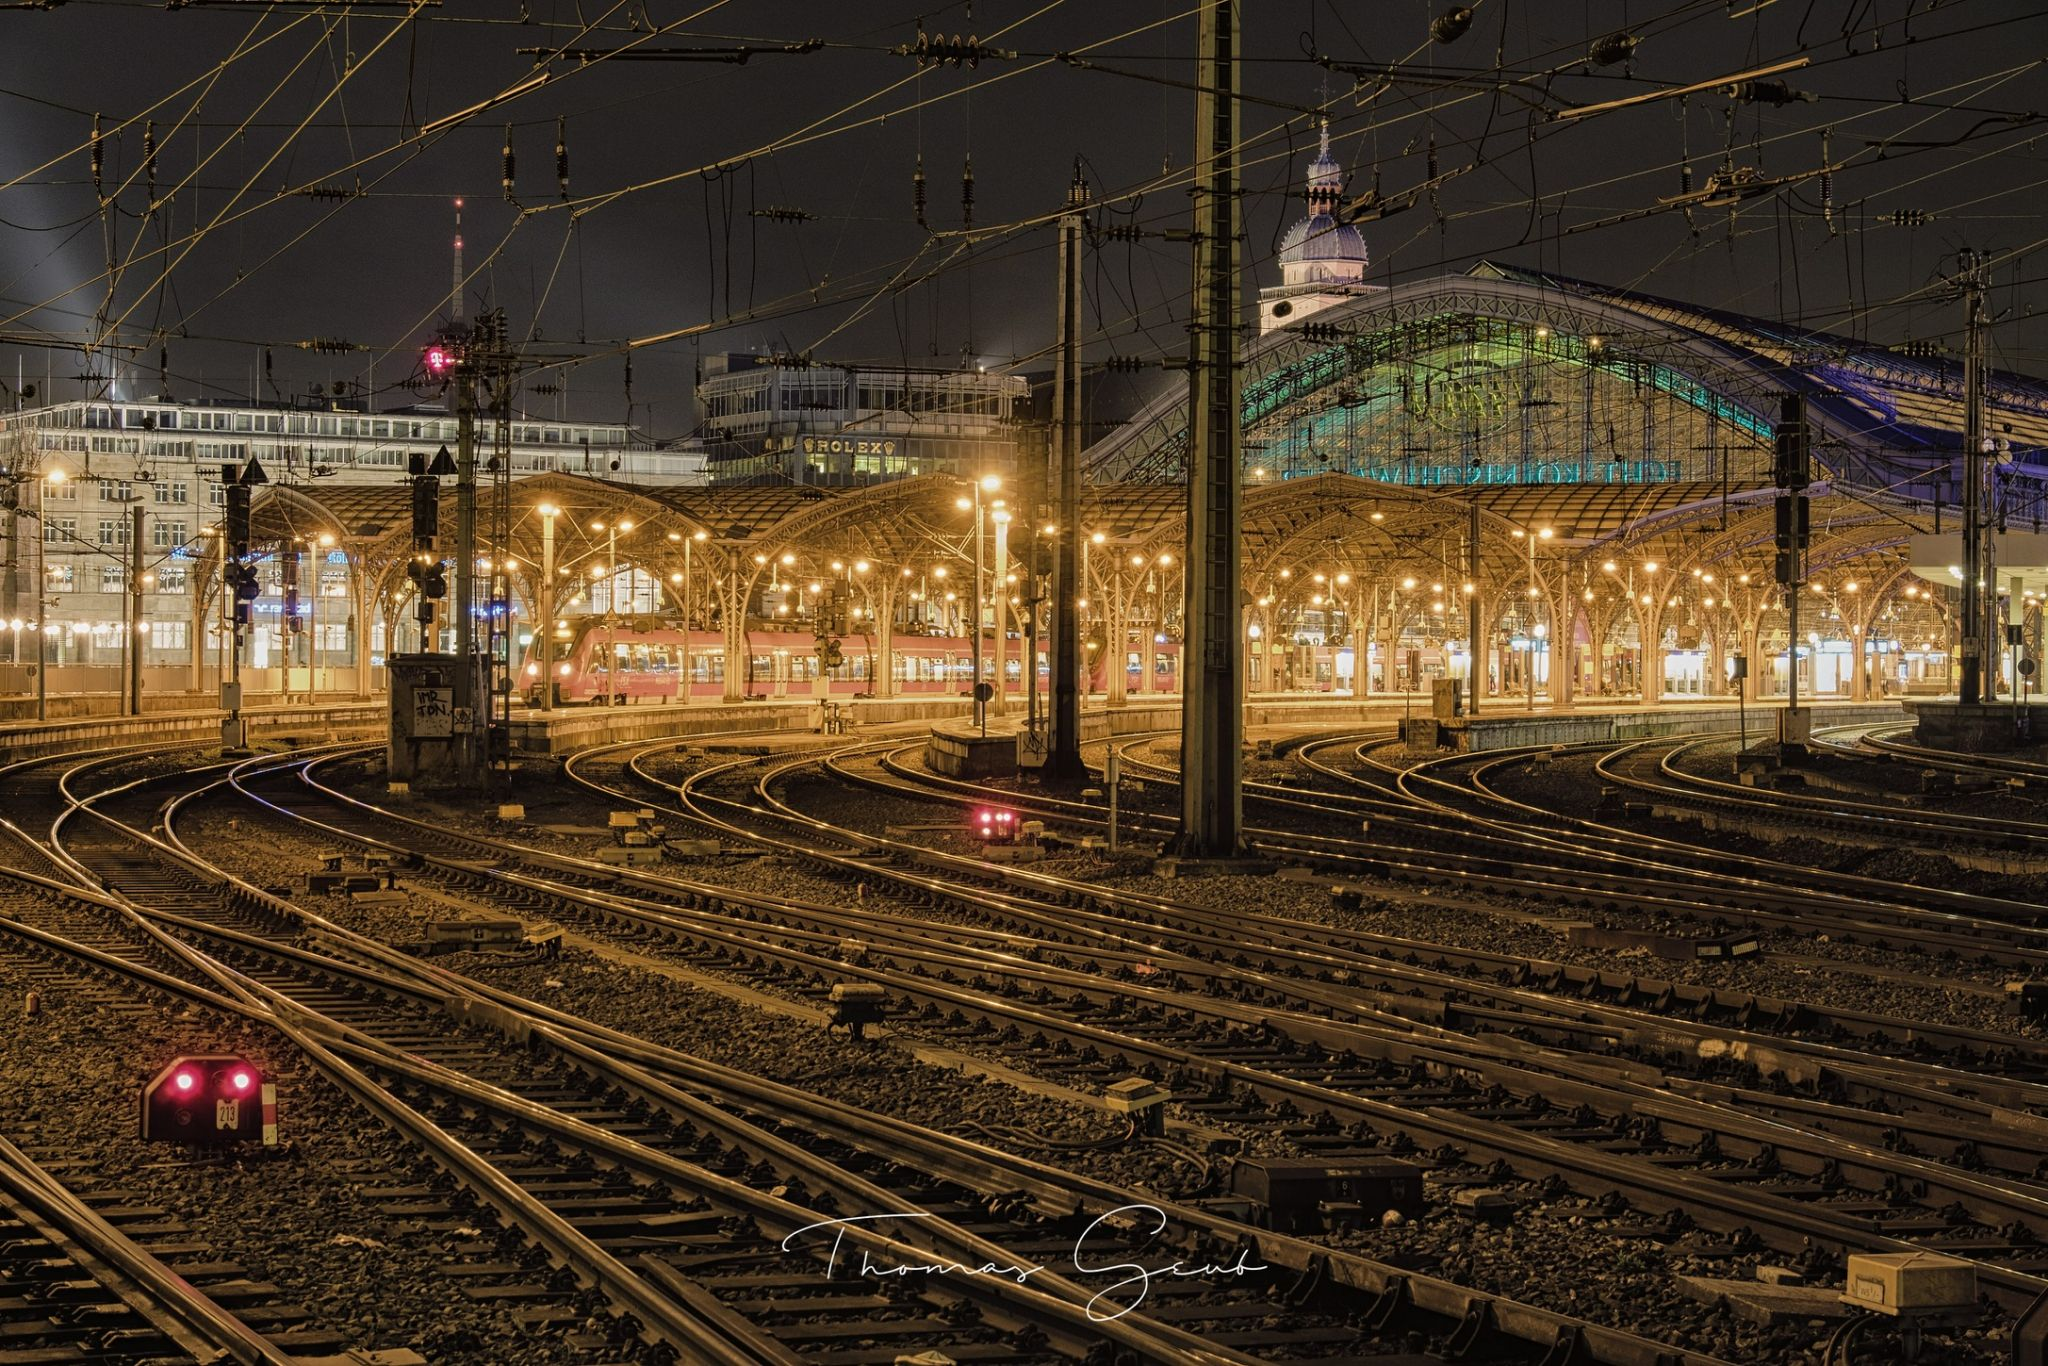 Cologne Central Station, Germany